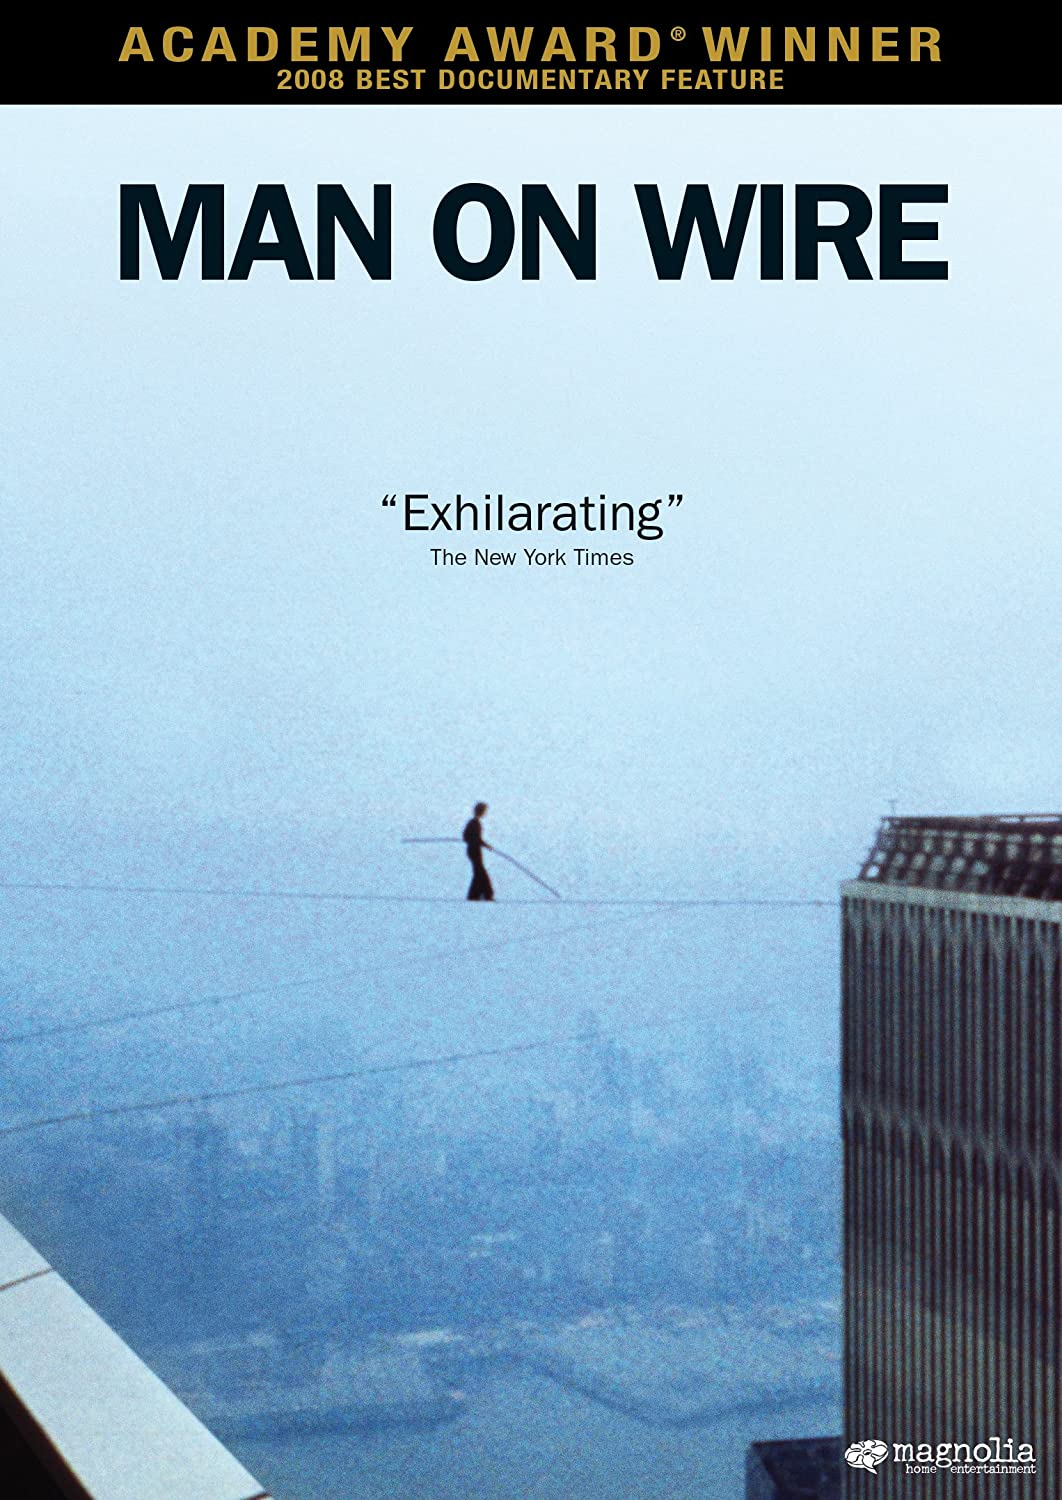 Amazon.com: Man on Wire: Philippe Petit, James Marsh: Movies & TV